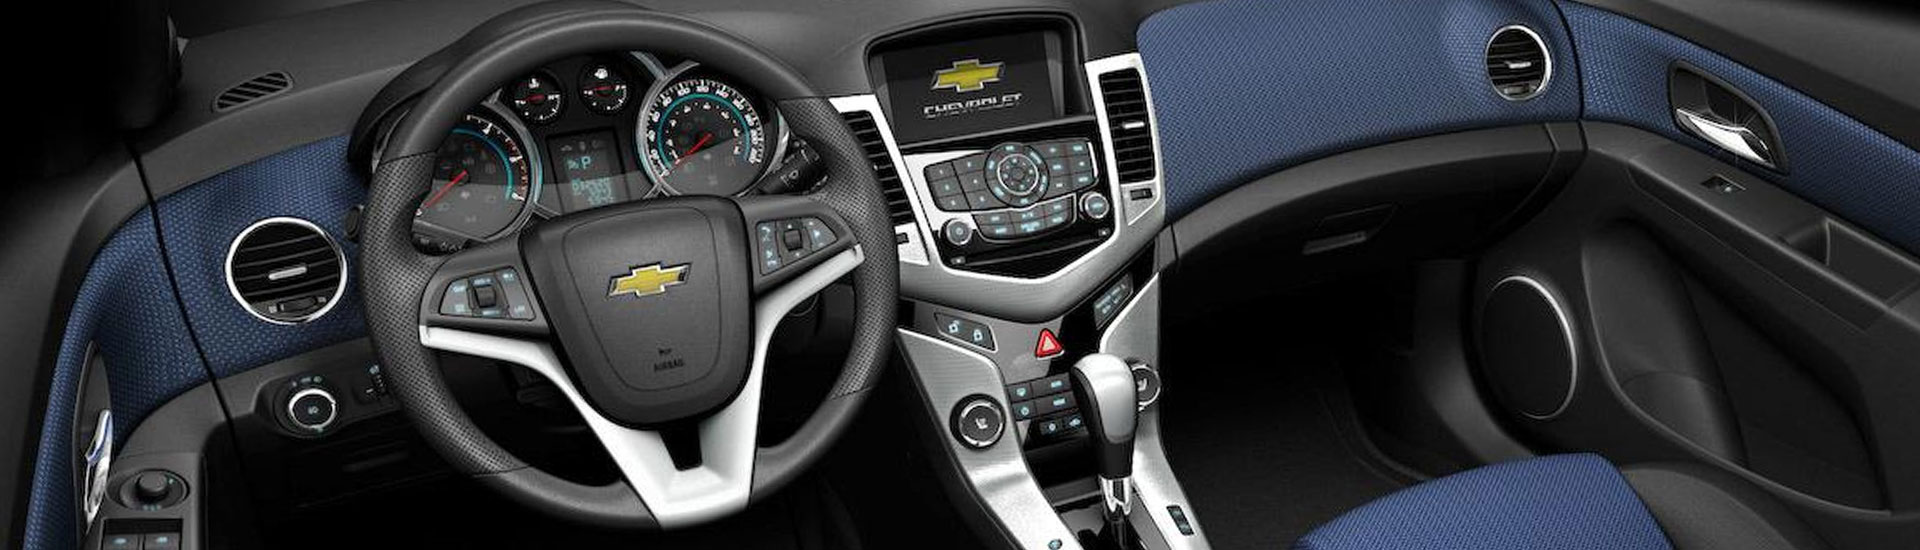 Cruze chevy cruze 2014 interior : Chevrolet Cruze Dash Kits | Custom Chevrolet Cruze Dash Kit